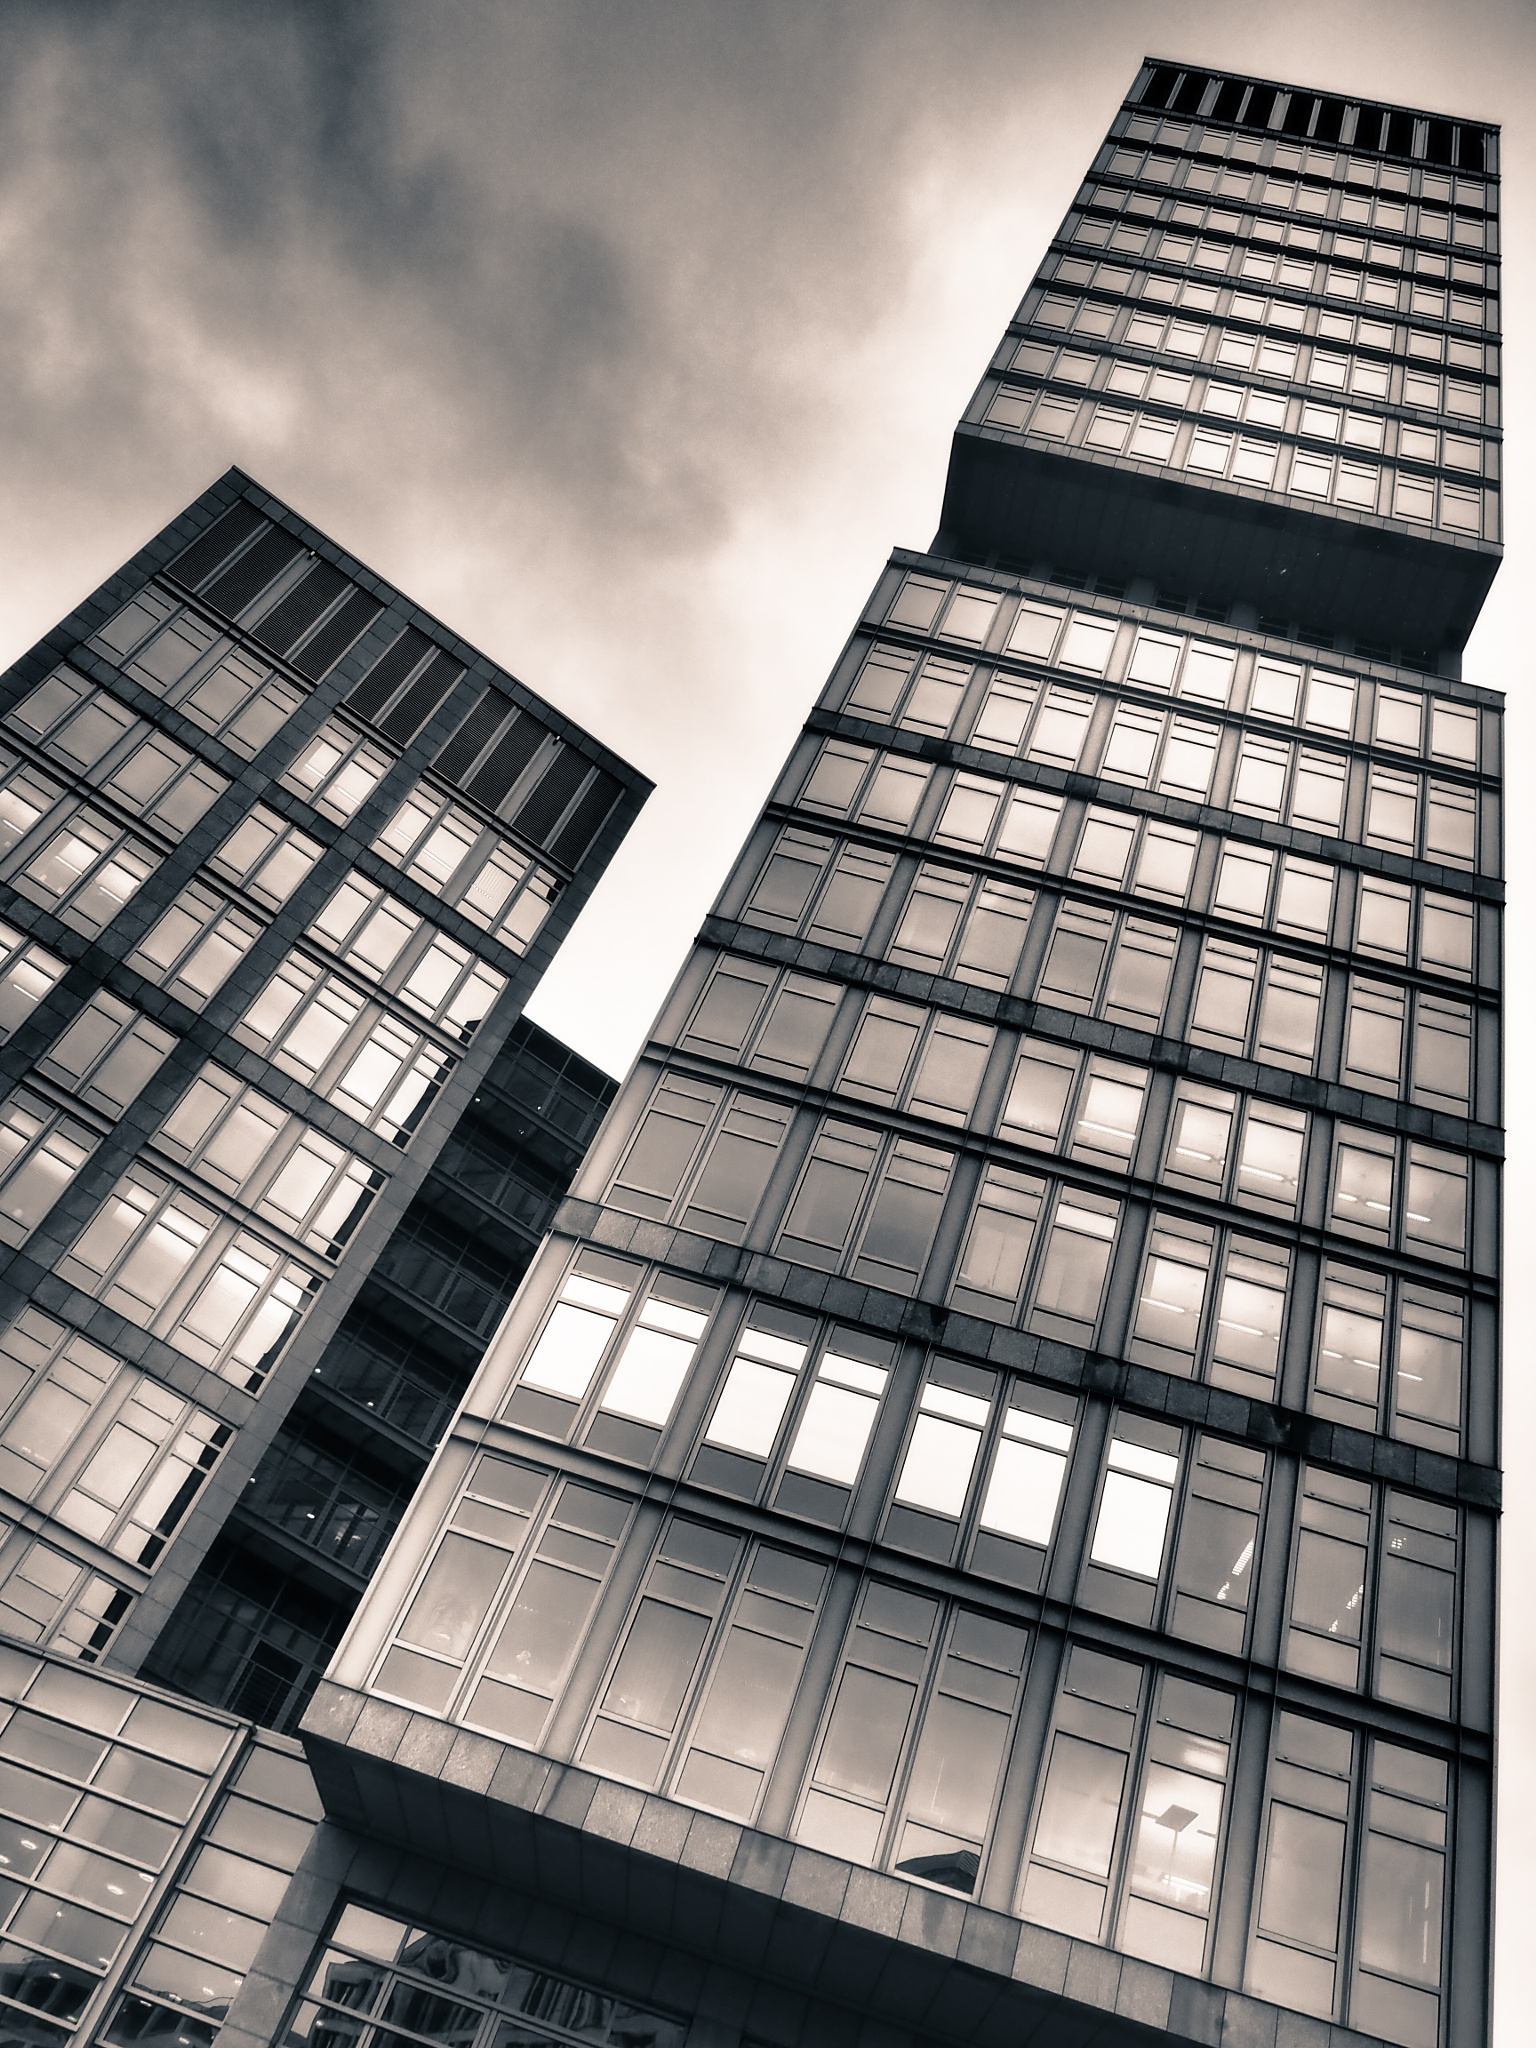 Berlin Building Black & White by Jeans Brown Photography / Jens Schwarz